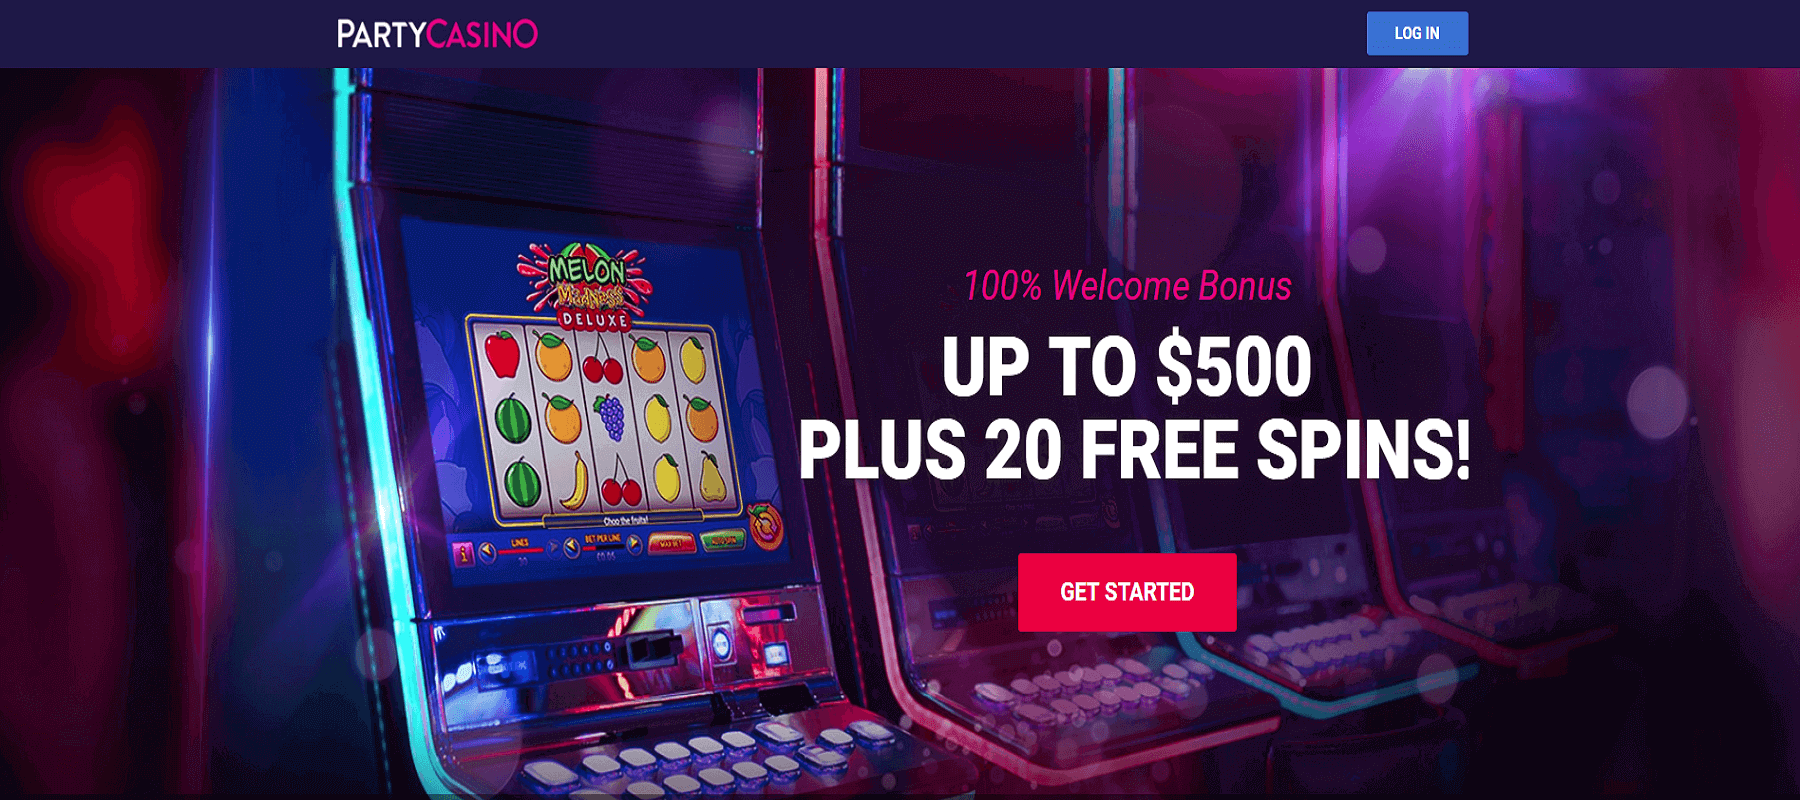 Party Casino 100% up to $500 + 20 Free Spins Welcome Bonus Screenshot